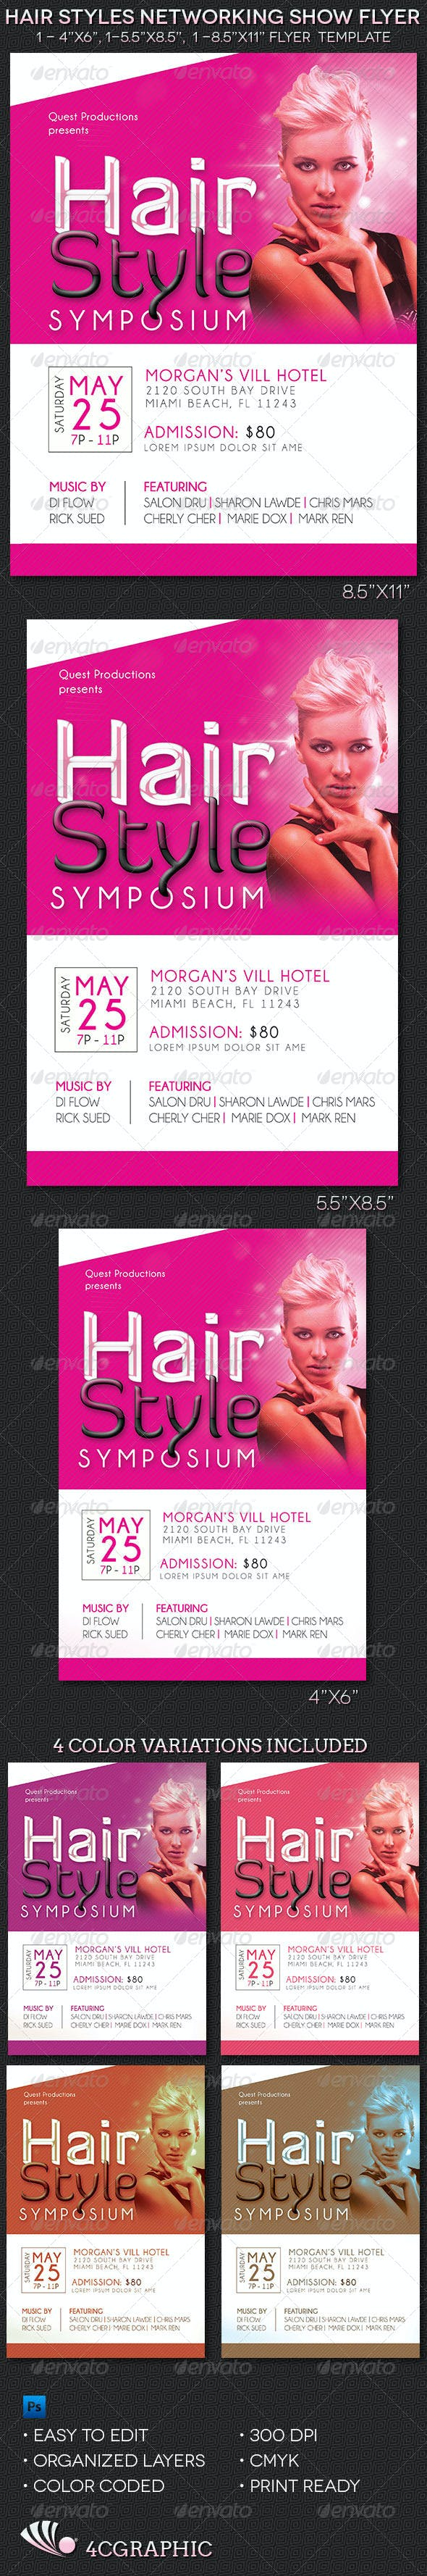 Hair Styles Networking Show Flyer Template Events Flyers